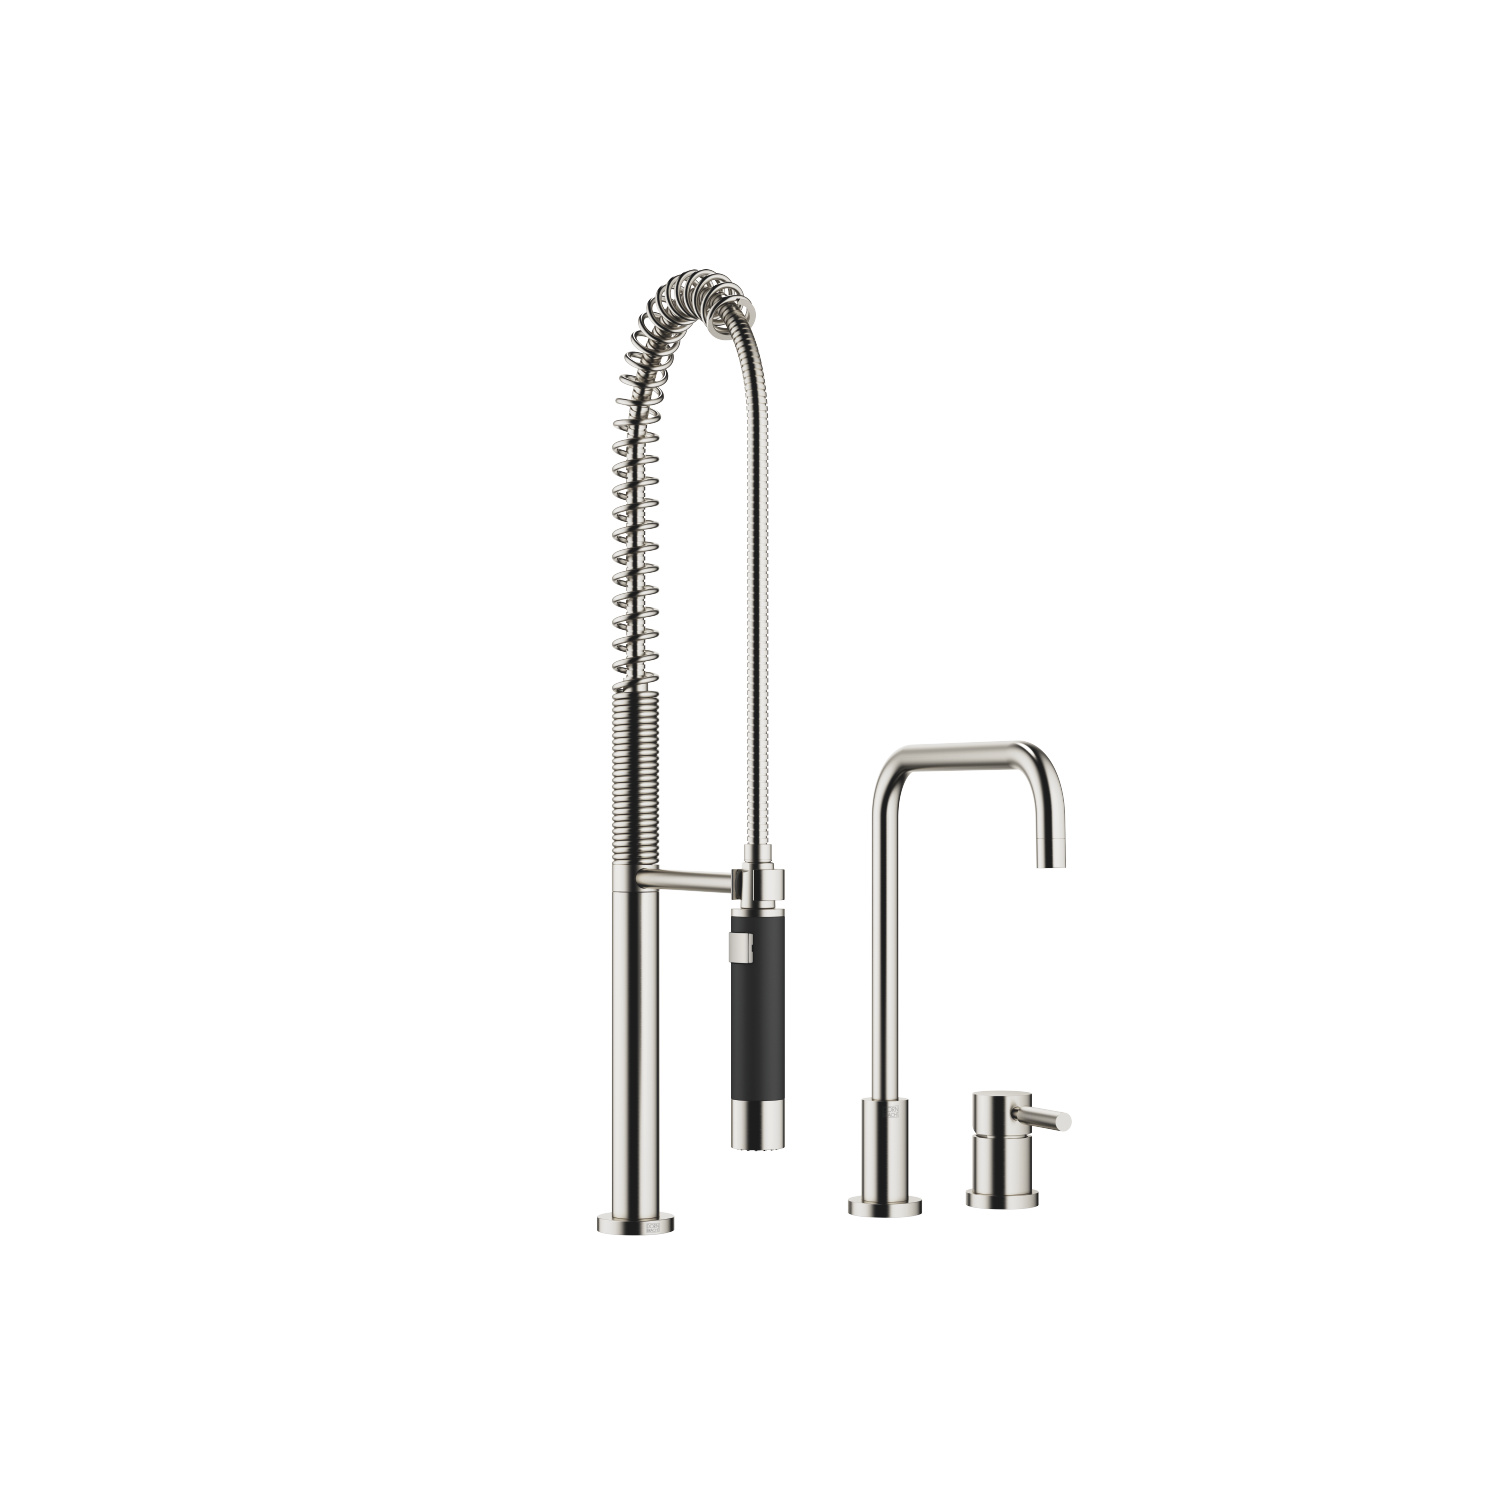 Two-hole mixer with individual flanges with Profi spray set - platinum matte